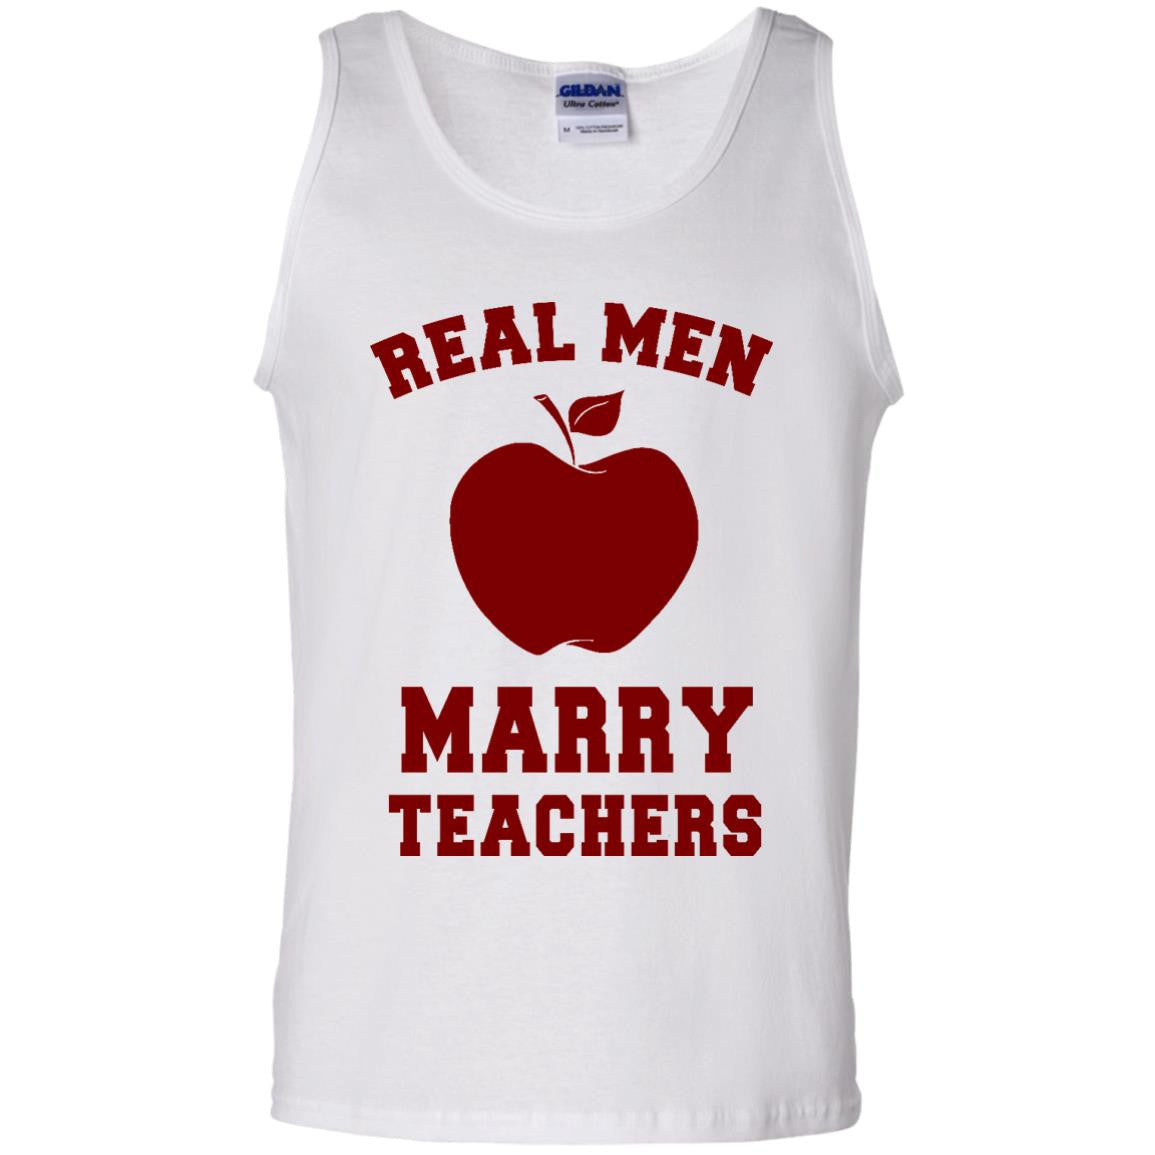 Real Men Marry Teachers Tank Top